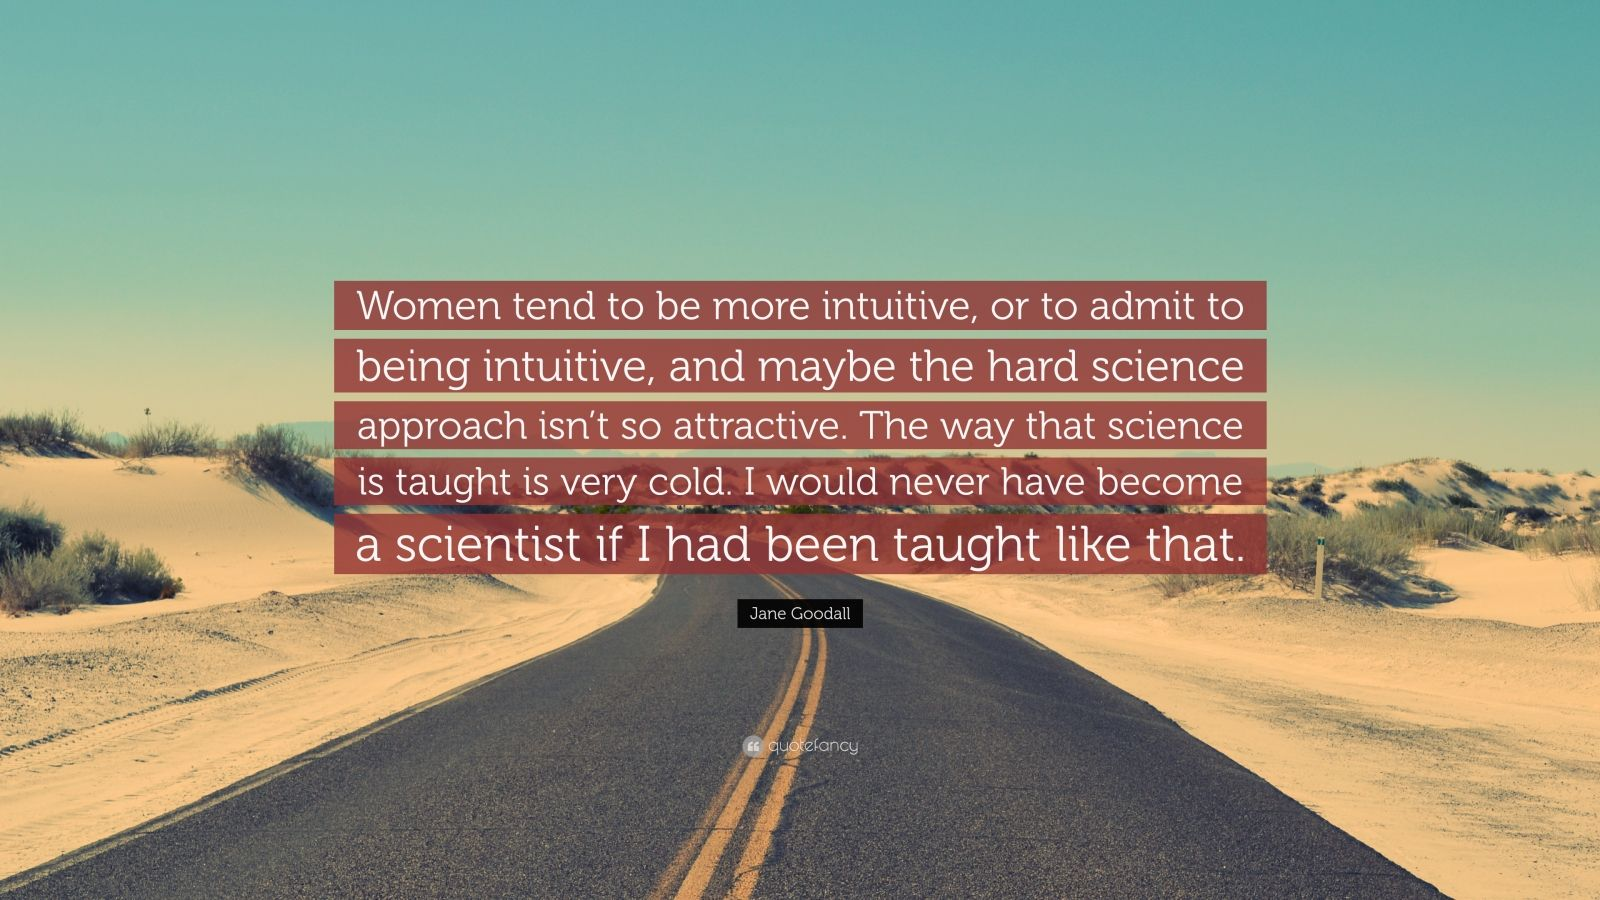 """Jane Goodall Quote: """"Women tend to be more intuitive, or to admit to being intuitive, and maybe the hard science approach isn't so attractive. The way that science is taught is very cold. I would never have become a scientist if I had been taught like that."""""""